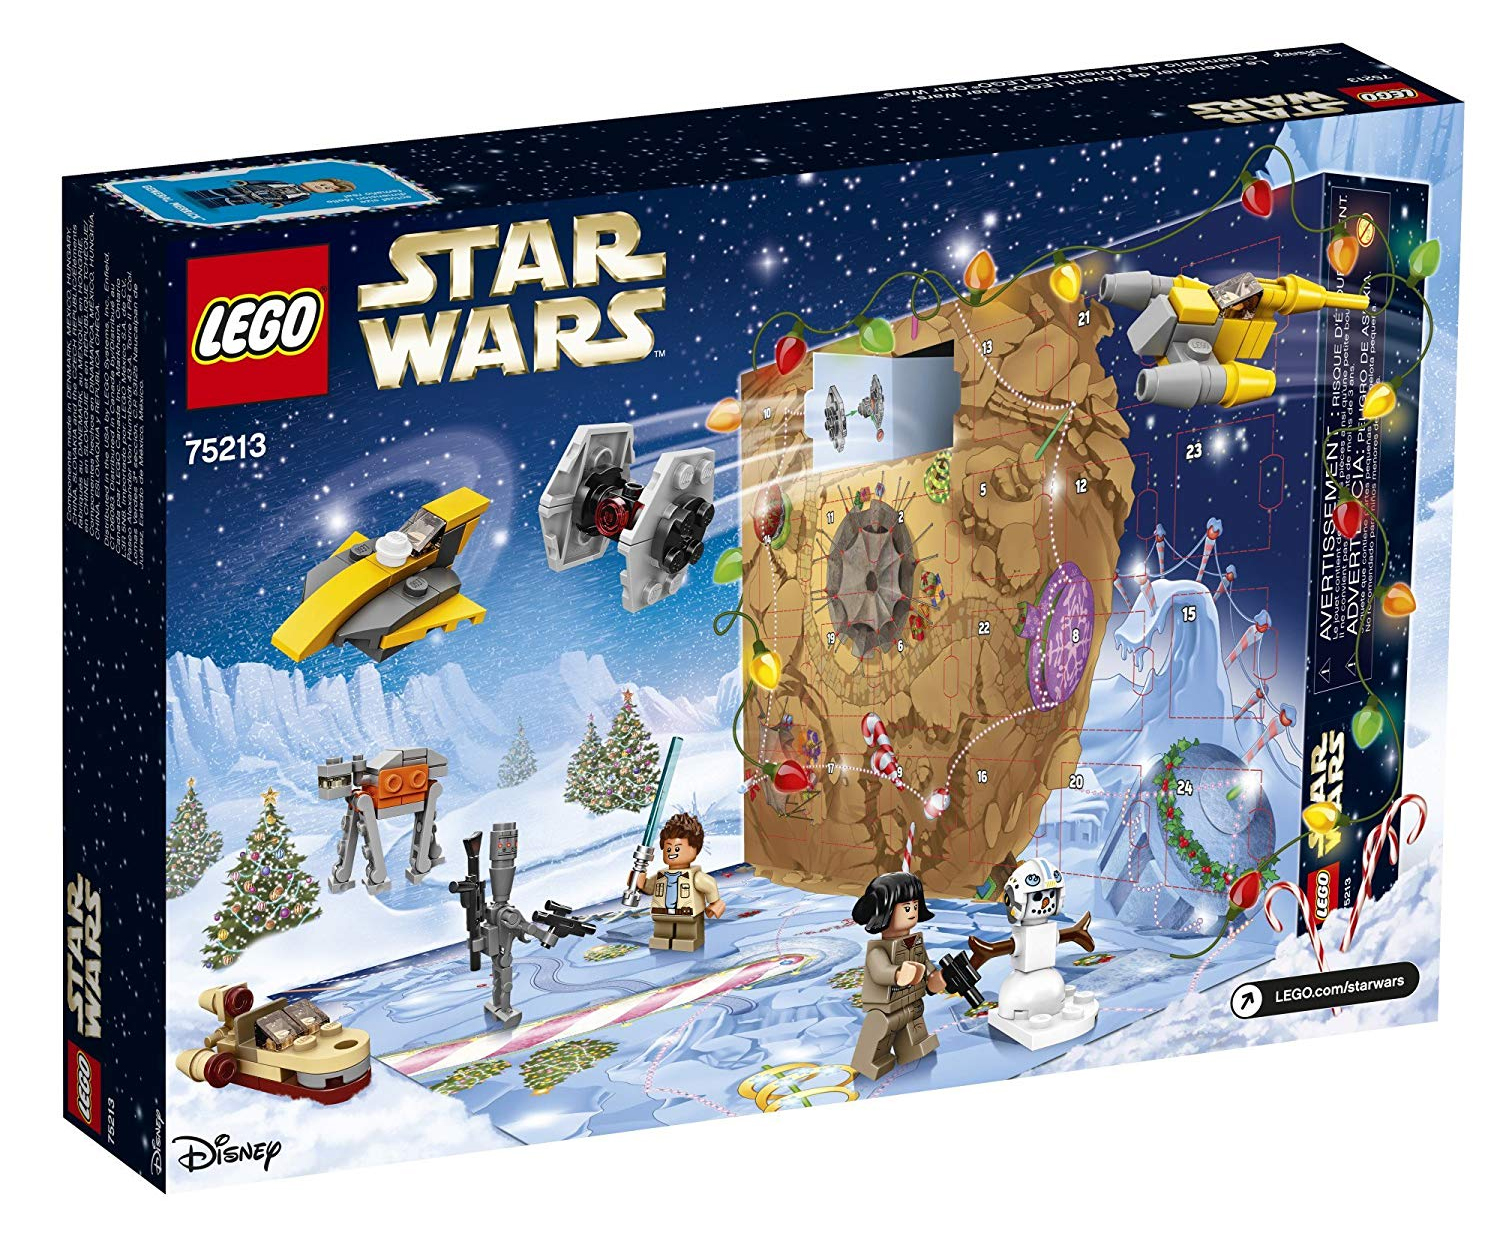 lego star wars 2018 advent calendar in stock at amazon. Black Bedroom Furniture Sets. Home Design Ideas